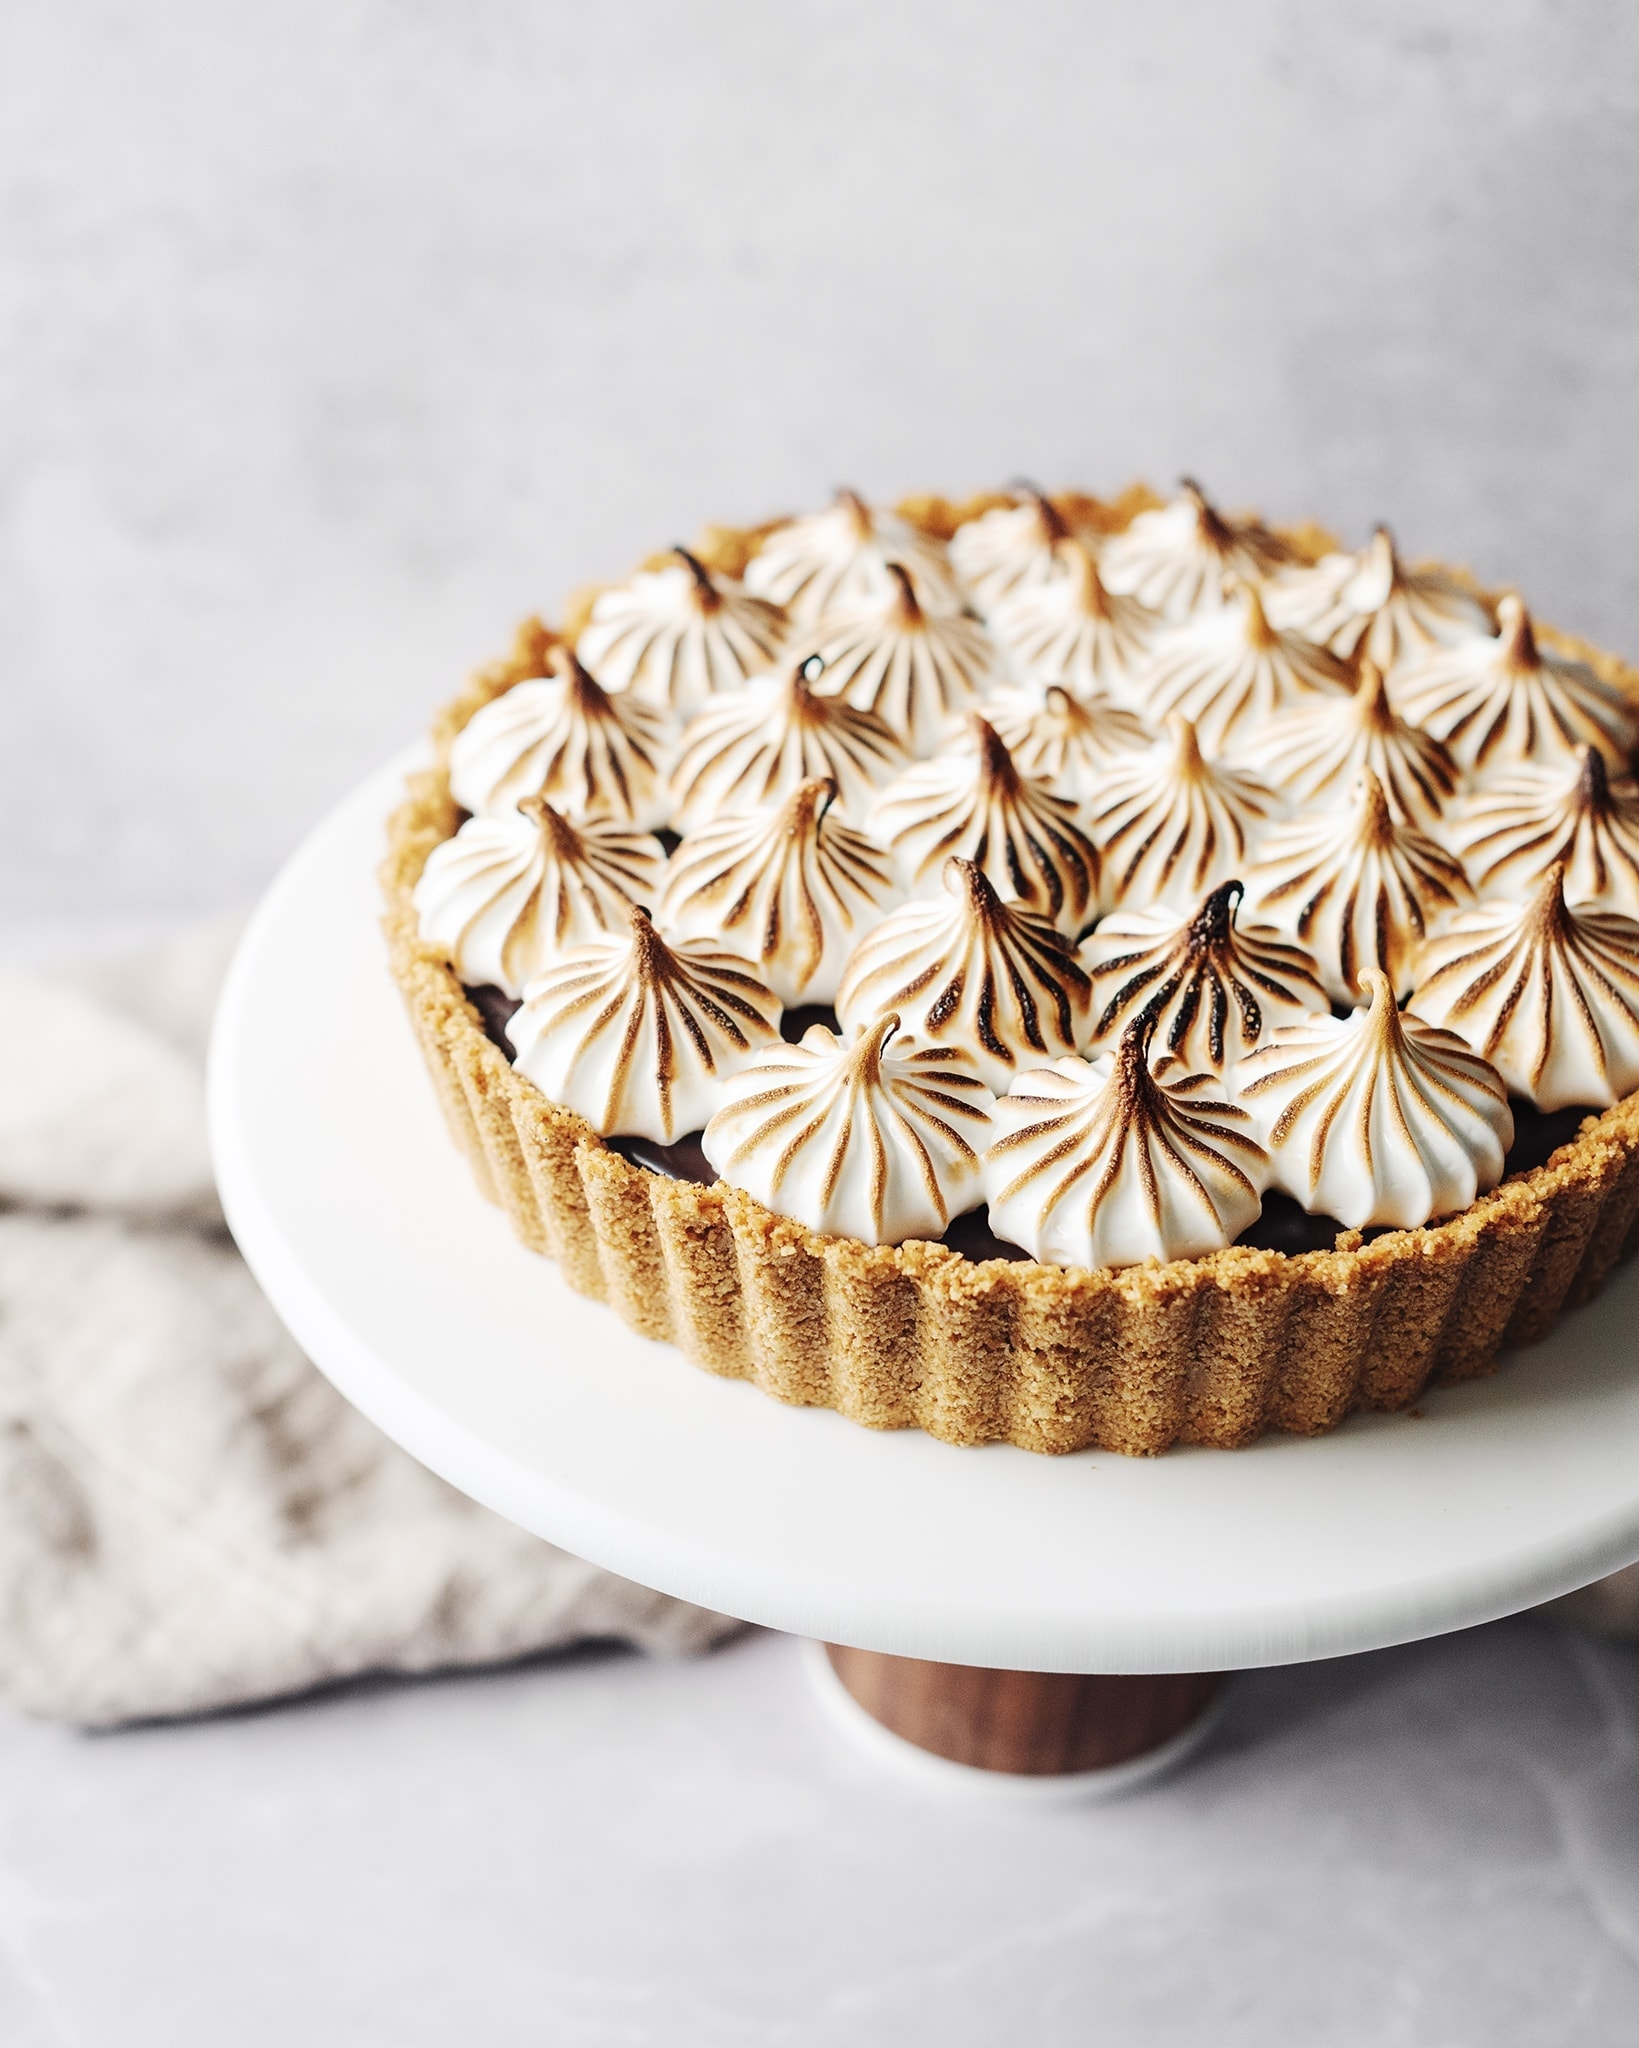 Toasted meringue on top of a s'mores tart